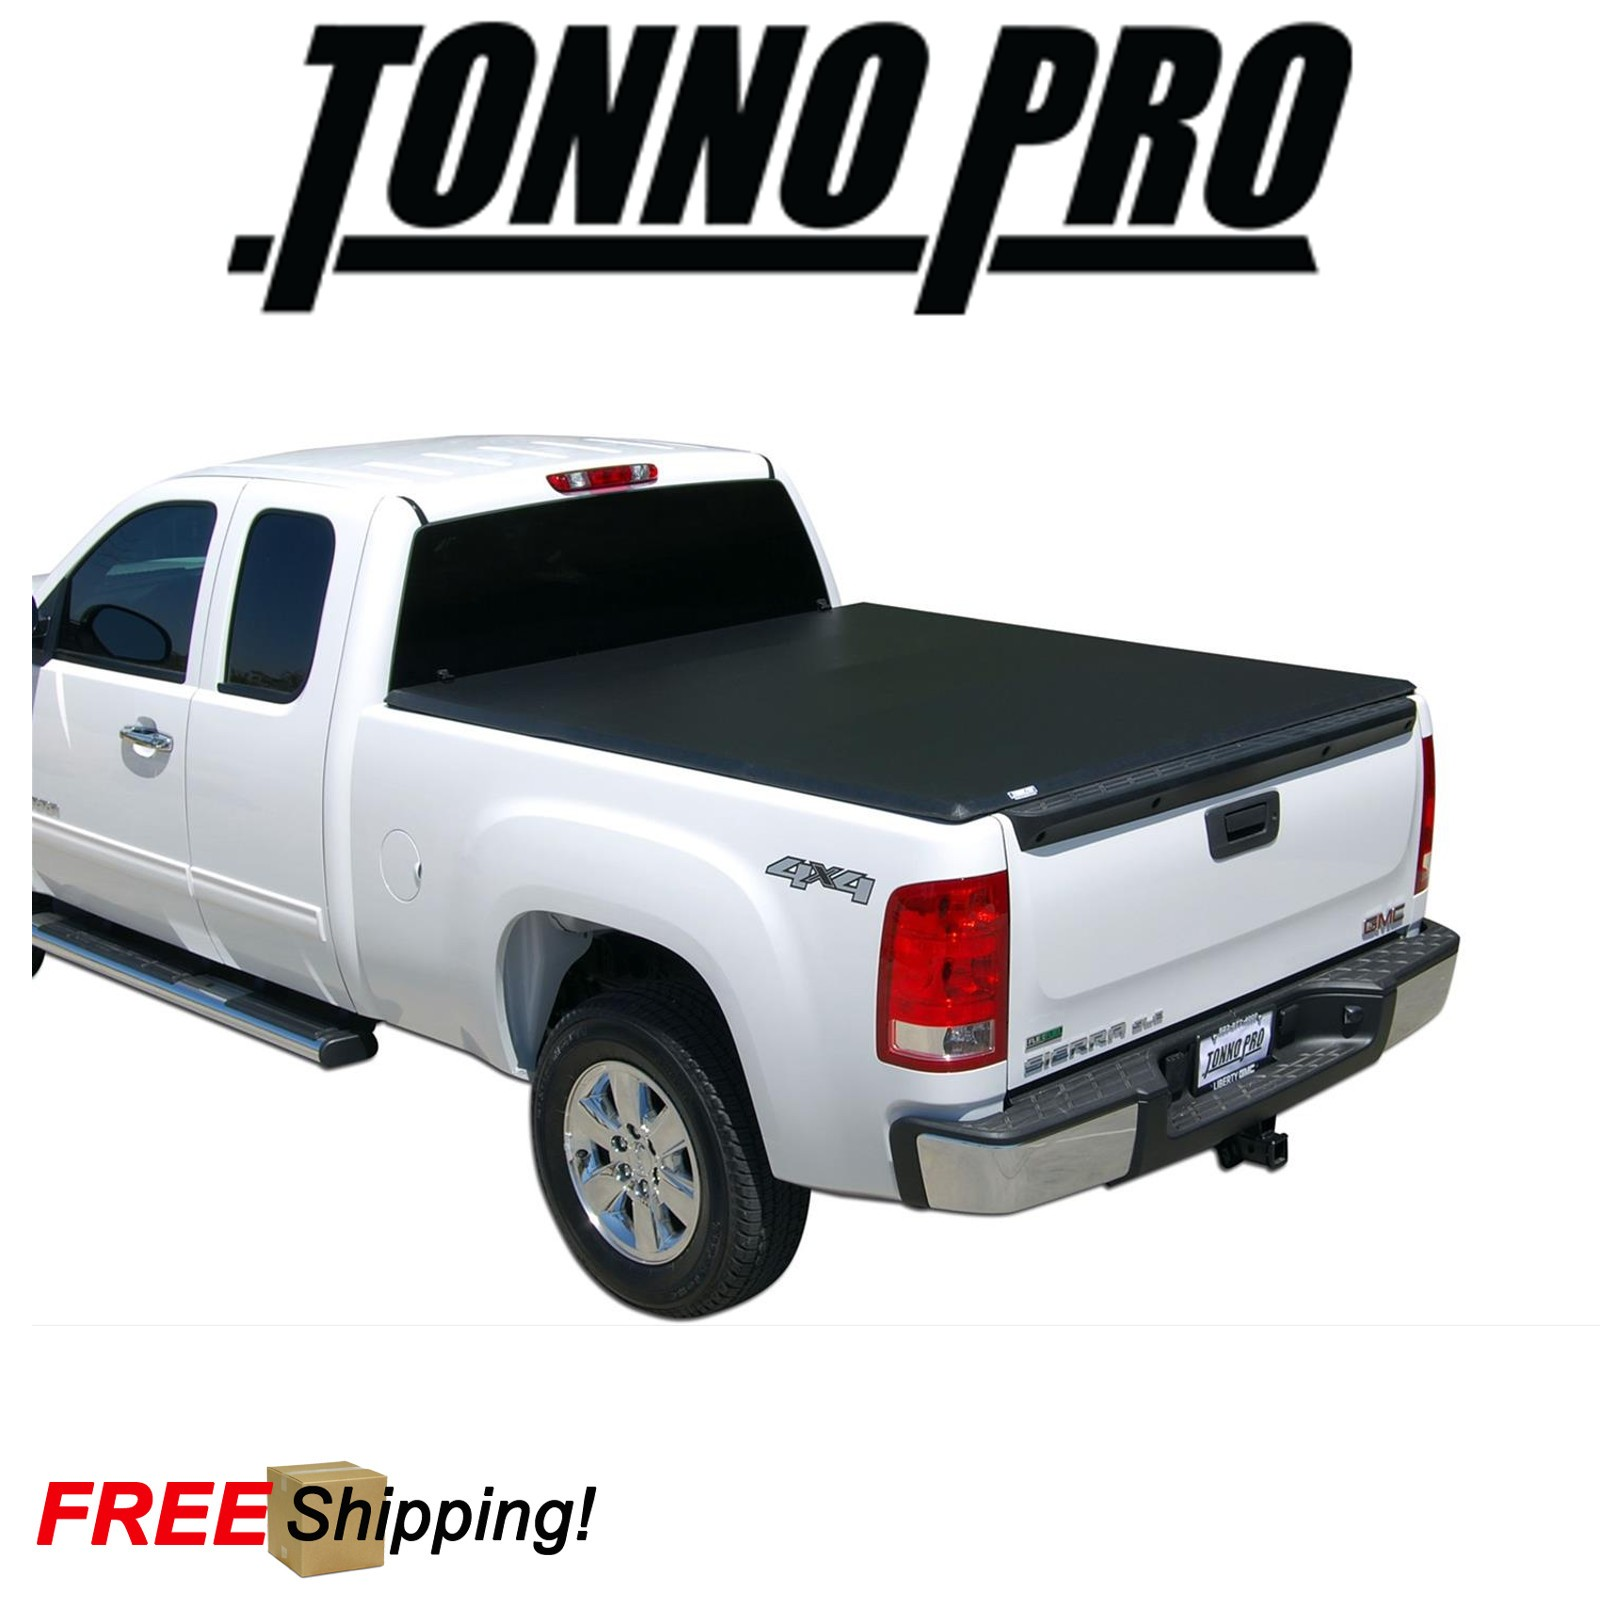 Toyota Tundra Bed Cover >> Details About Tonno Pro Tri Fold Soft Tonneau Cover Fits 2014 2017 Toyota Tundra 6 5 Bed